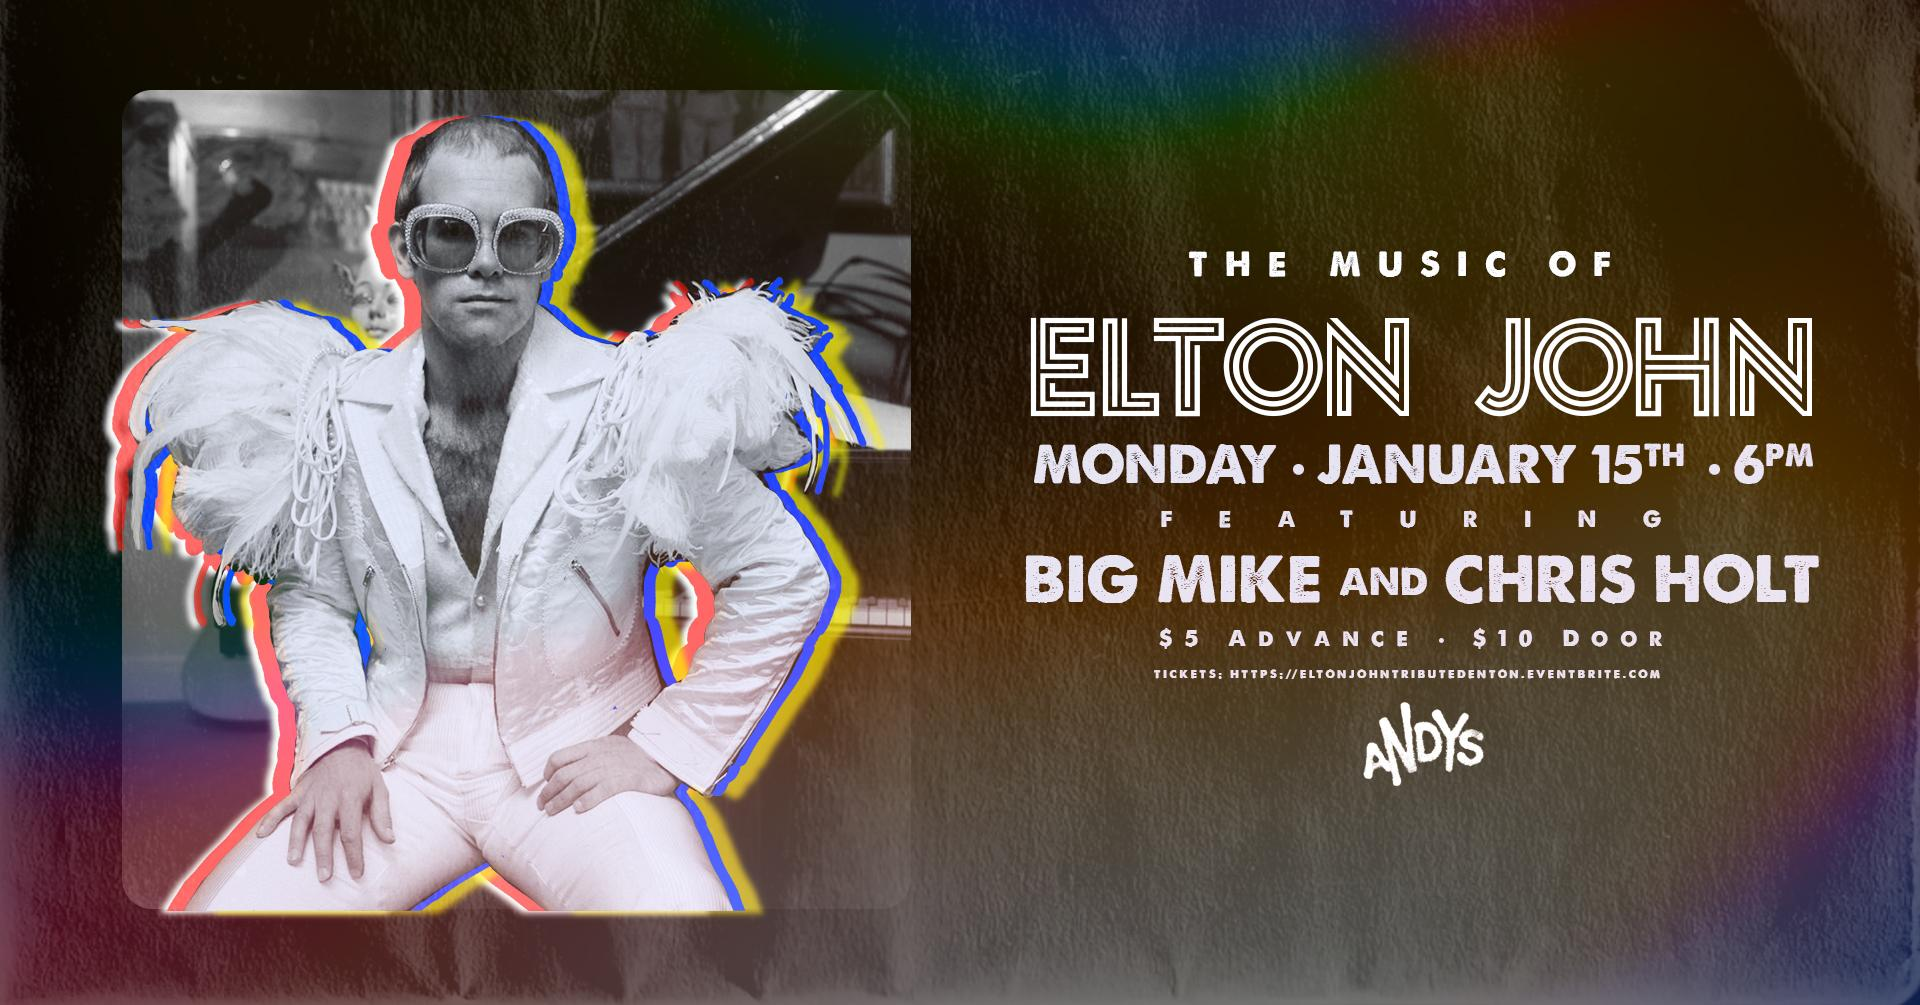 The Music of Elton John: Featuring Big Mike and Chris Holt